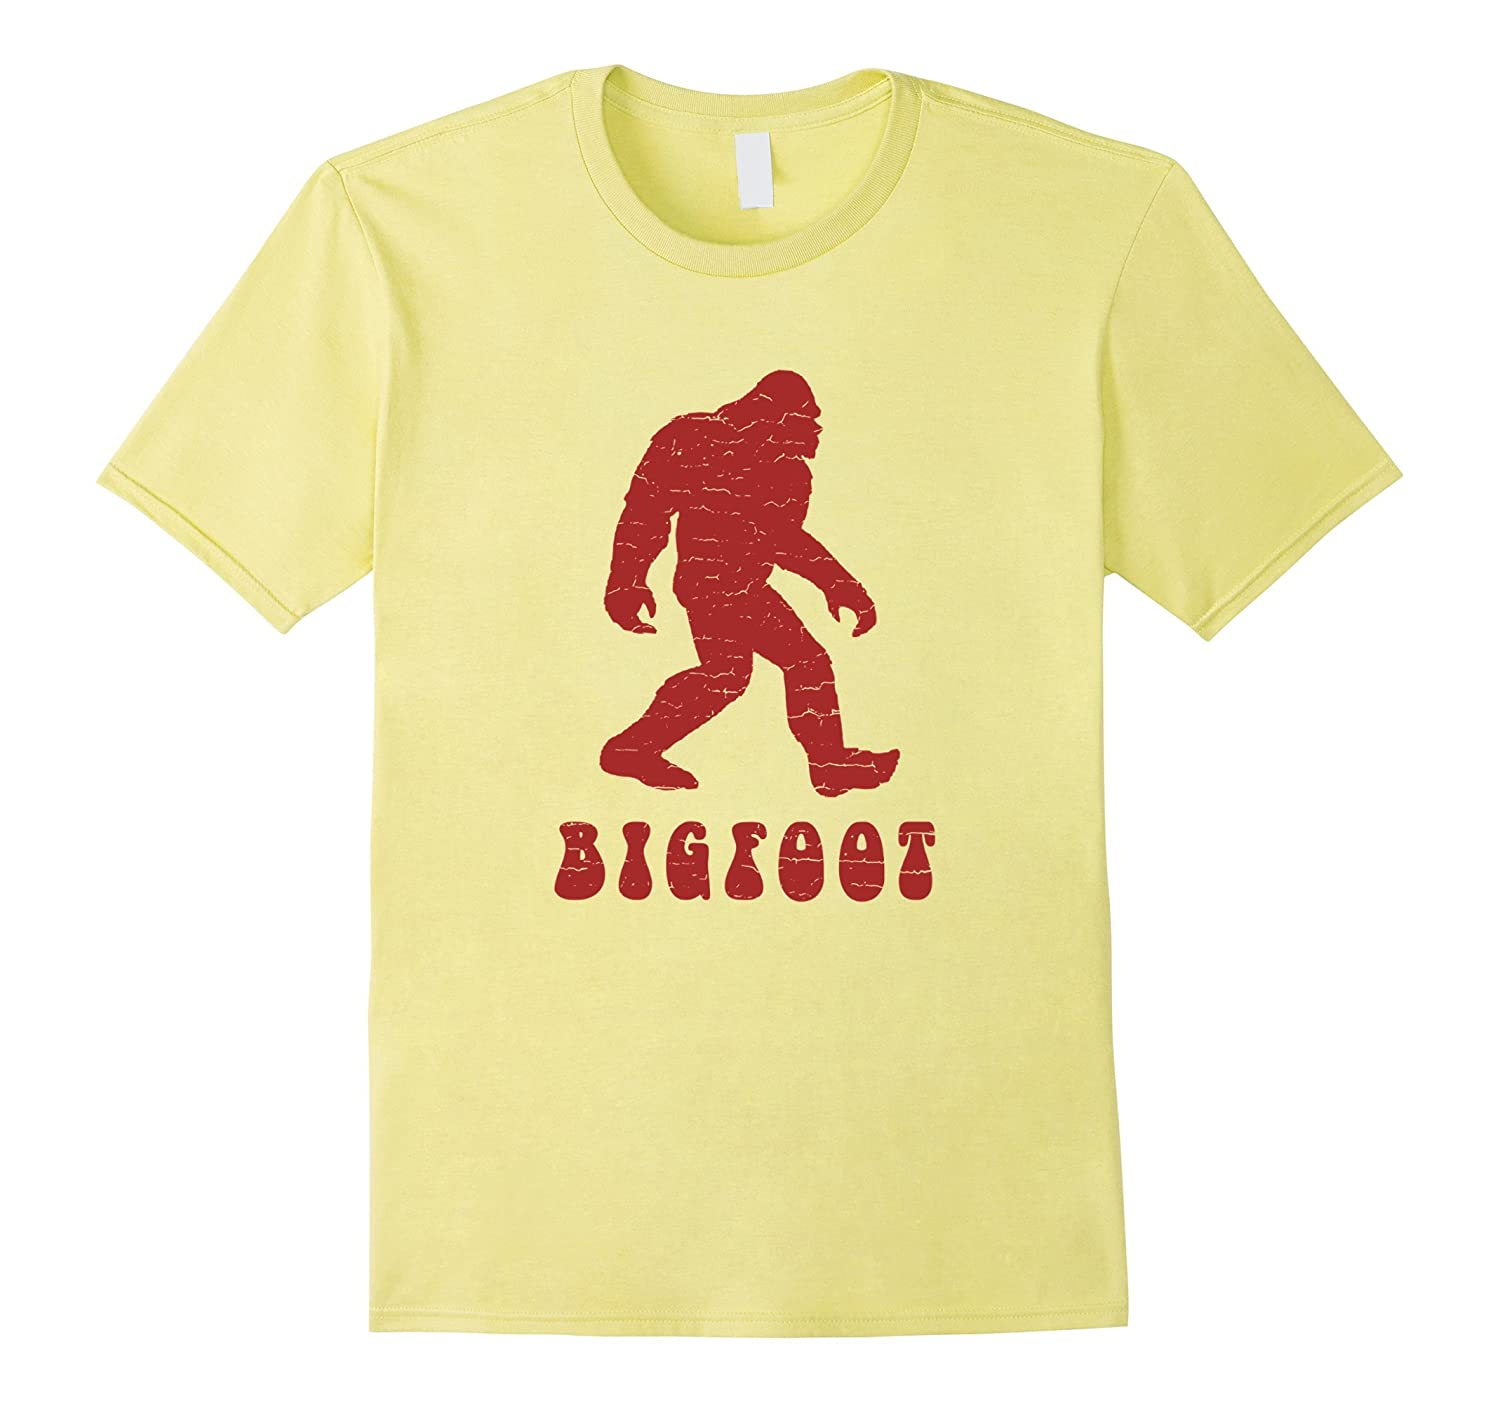 Distressed Retro 1970's Style Bigfoot Silhouette T-Shirt